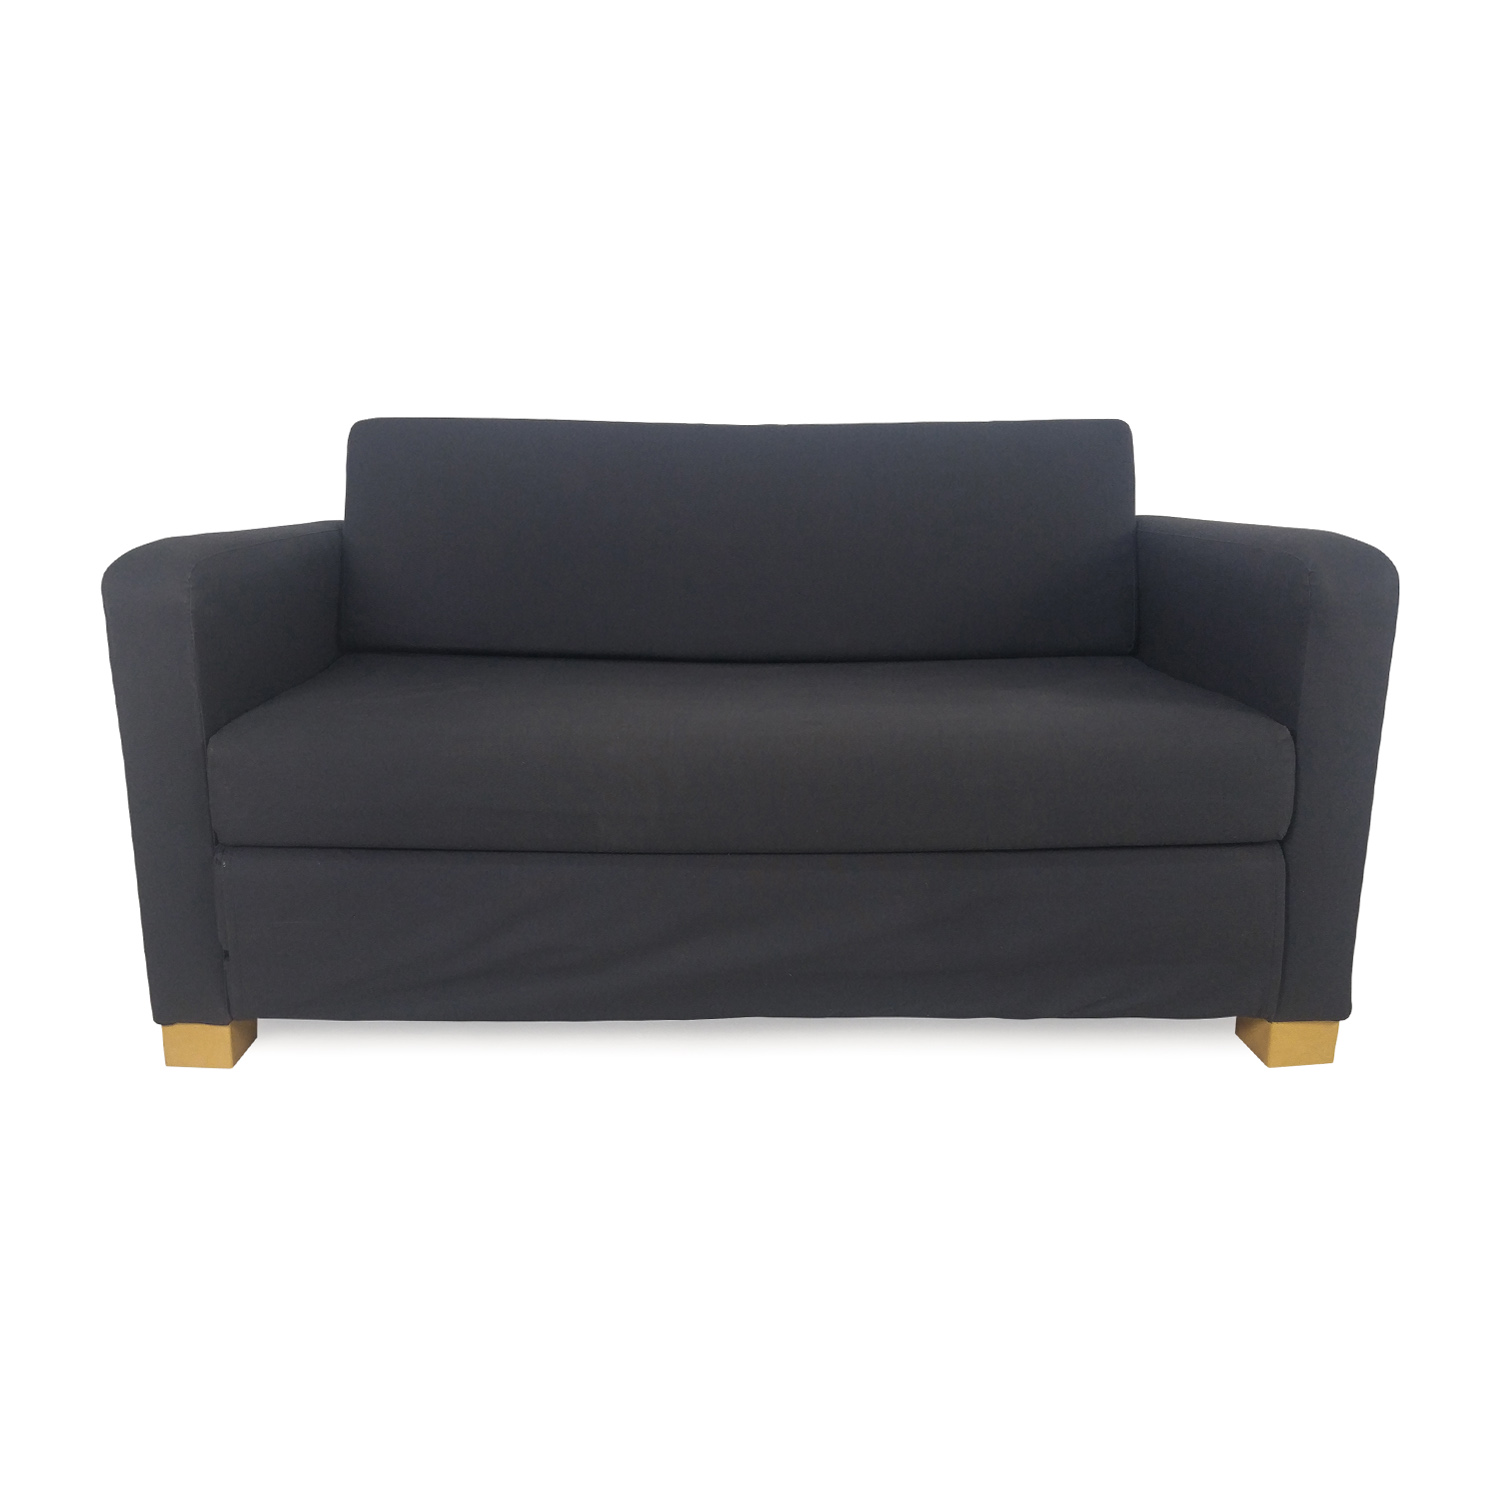 Ikea Sofa Bed 57 Off Ikea Off Blue Futon Sofa Bed Sofas